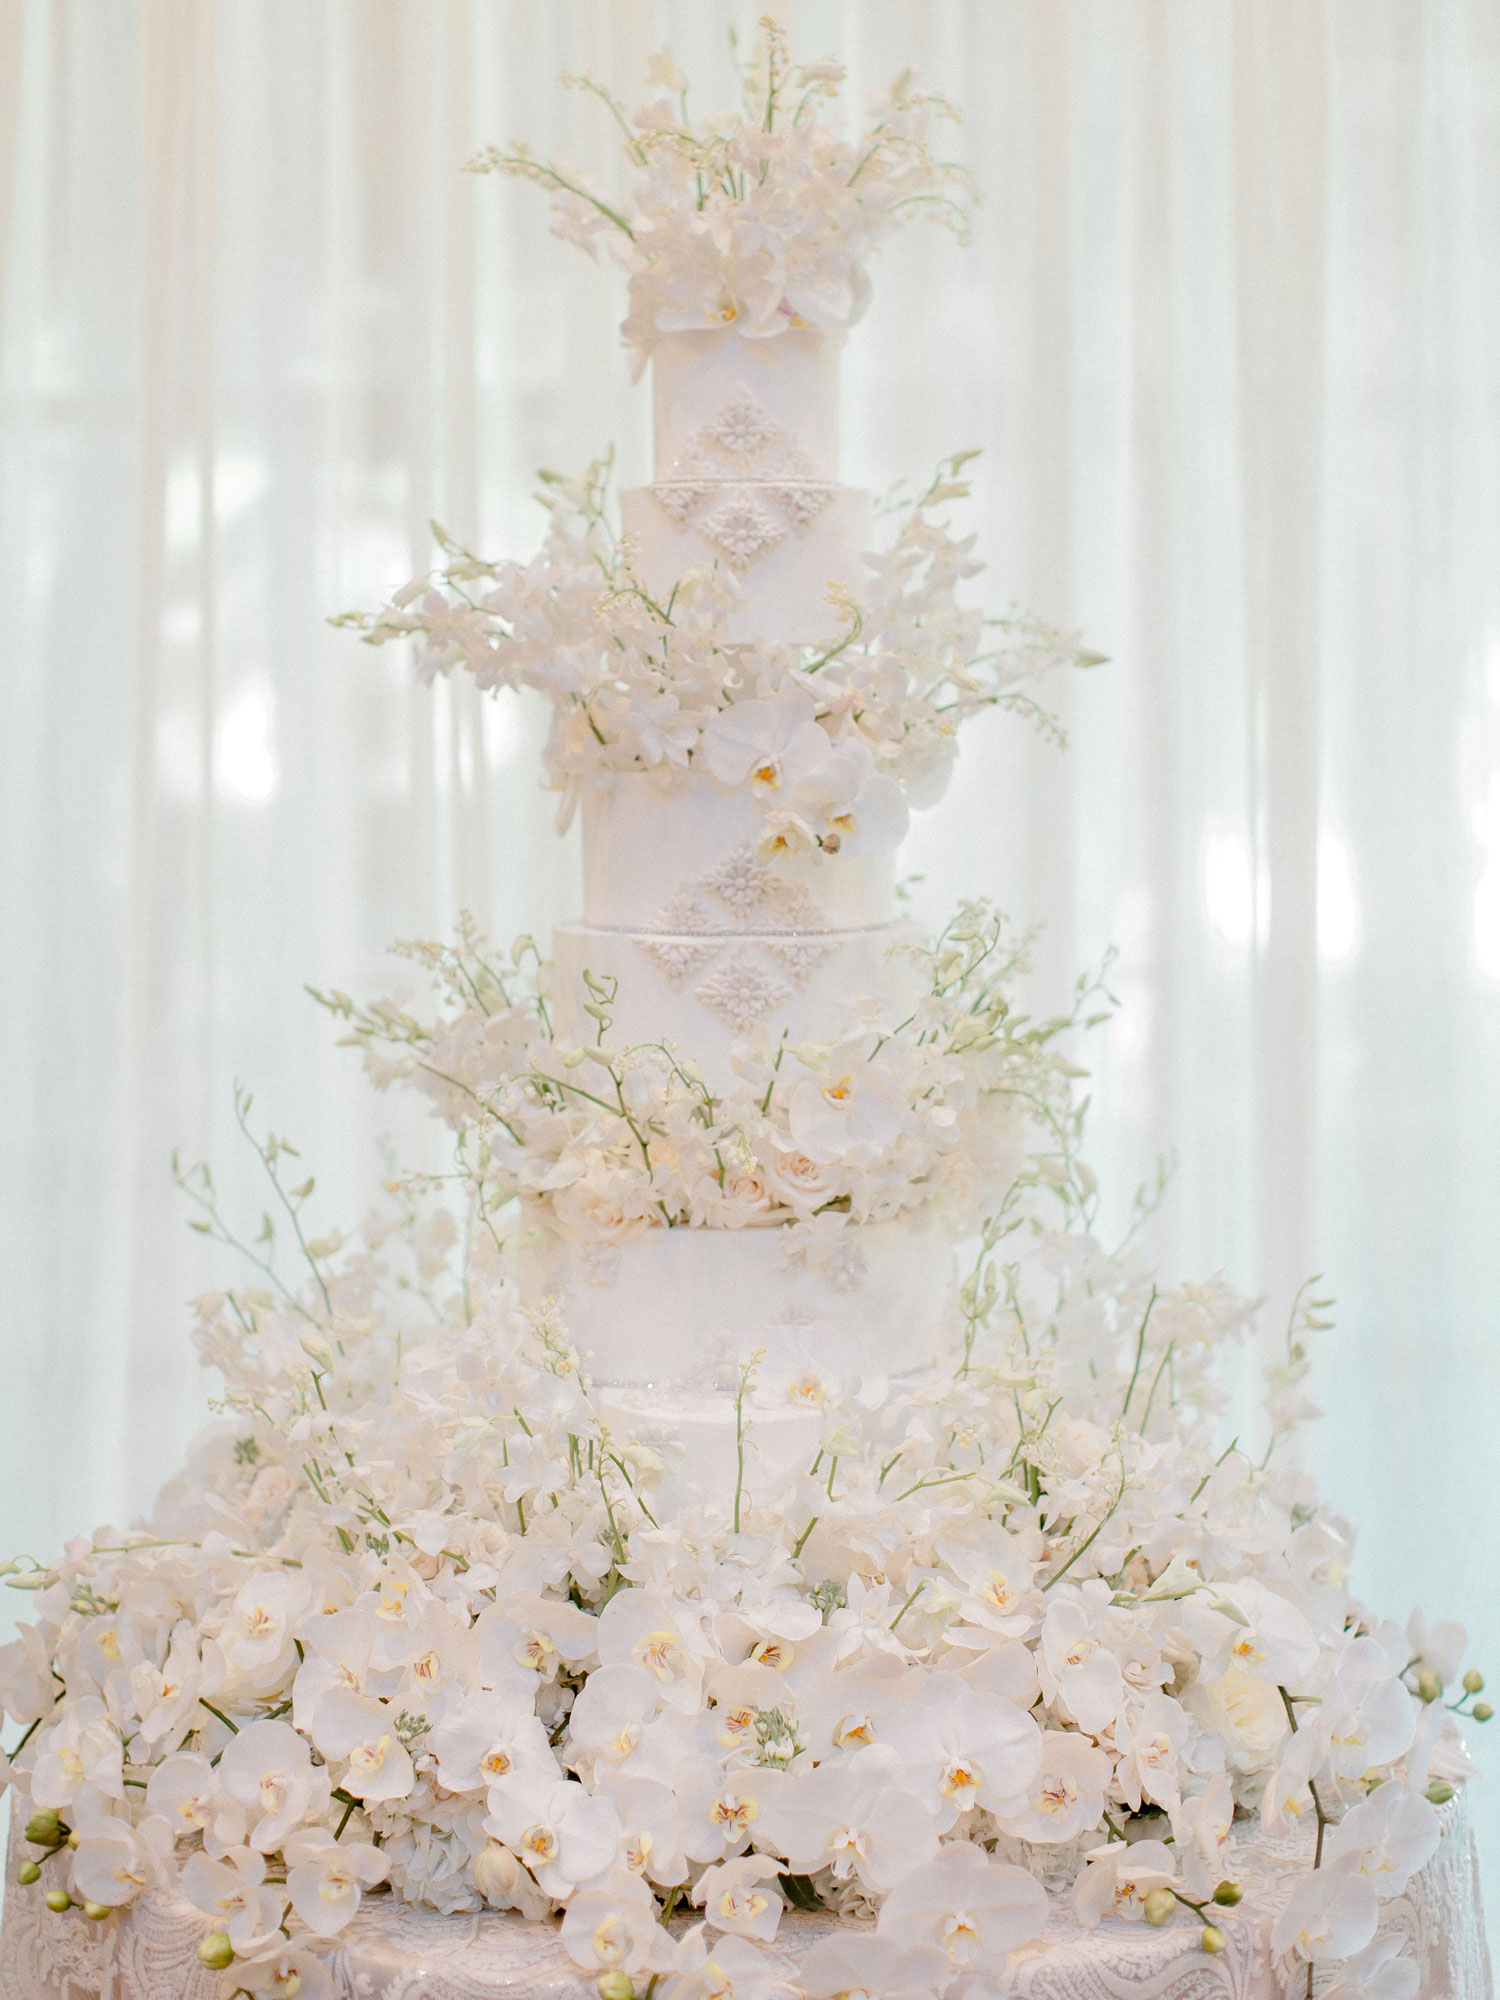 Wedding Ideas  Cake Ideas for Every Style   Inside Weddings Opulent white wedding cake ideas with hundreds of sugar flowers